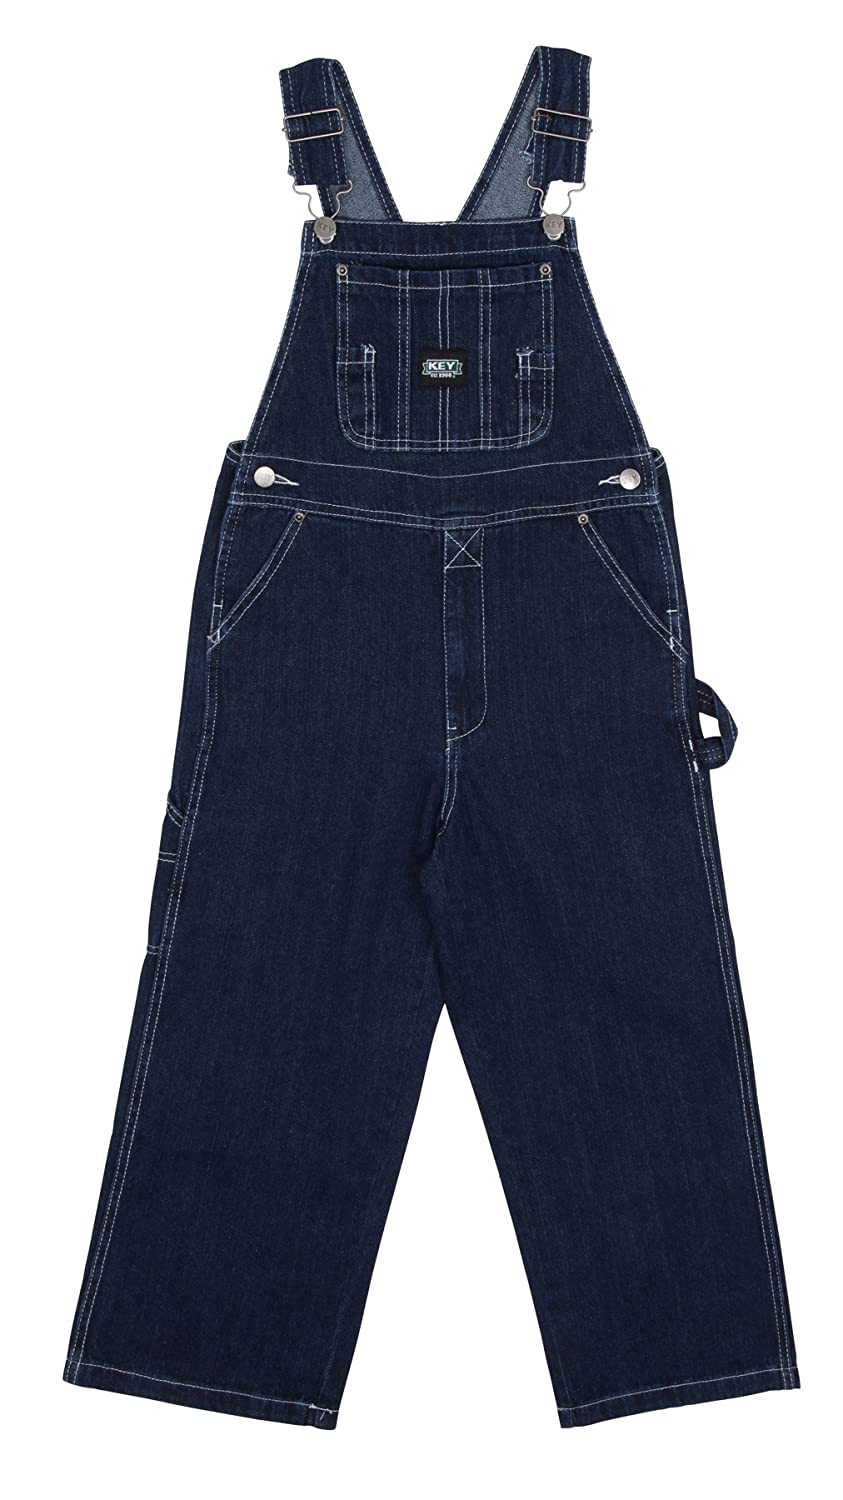 Key Industries Childrens Bib Overalls - Stonewash Age 4-18 Denim Dungarees Overa